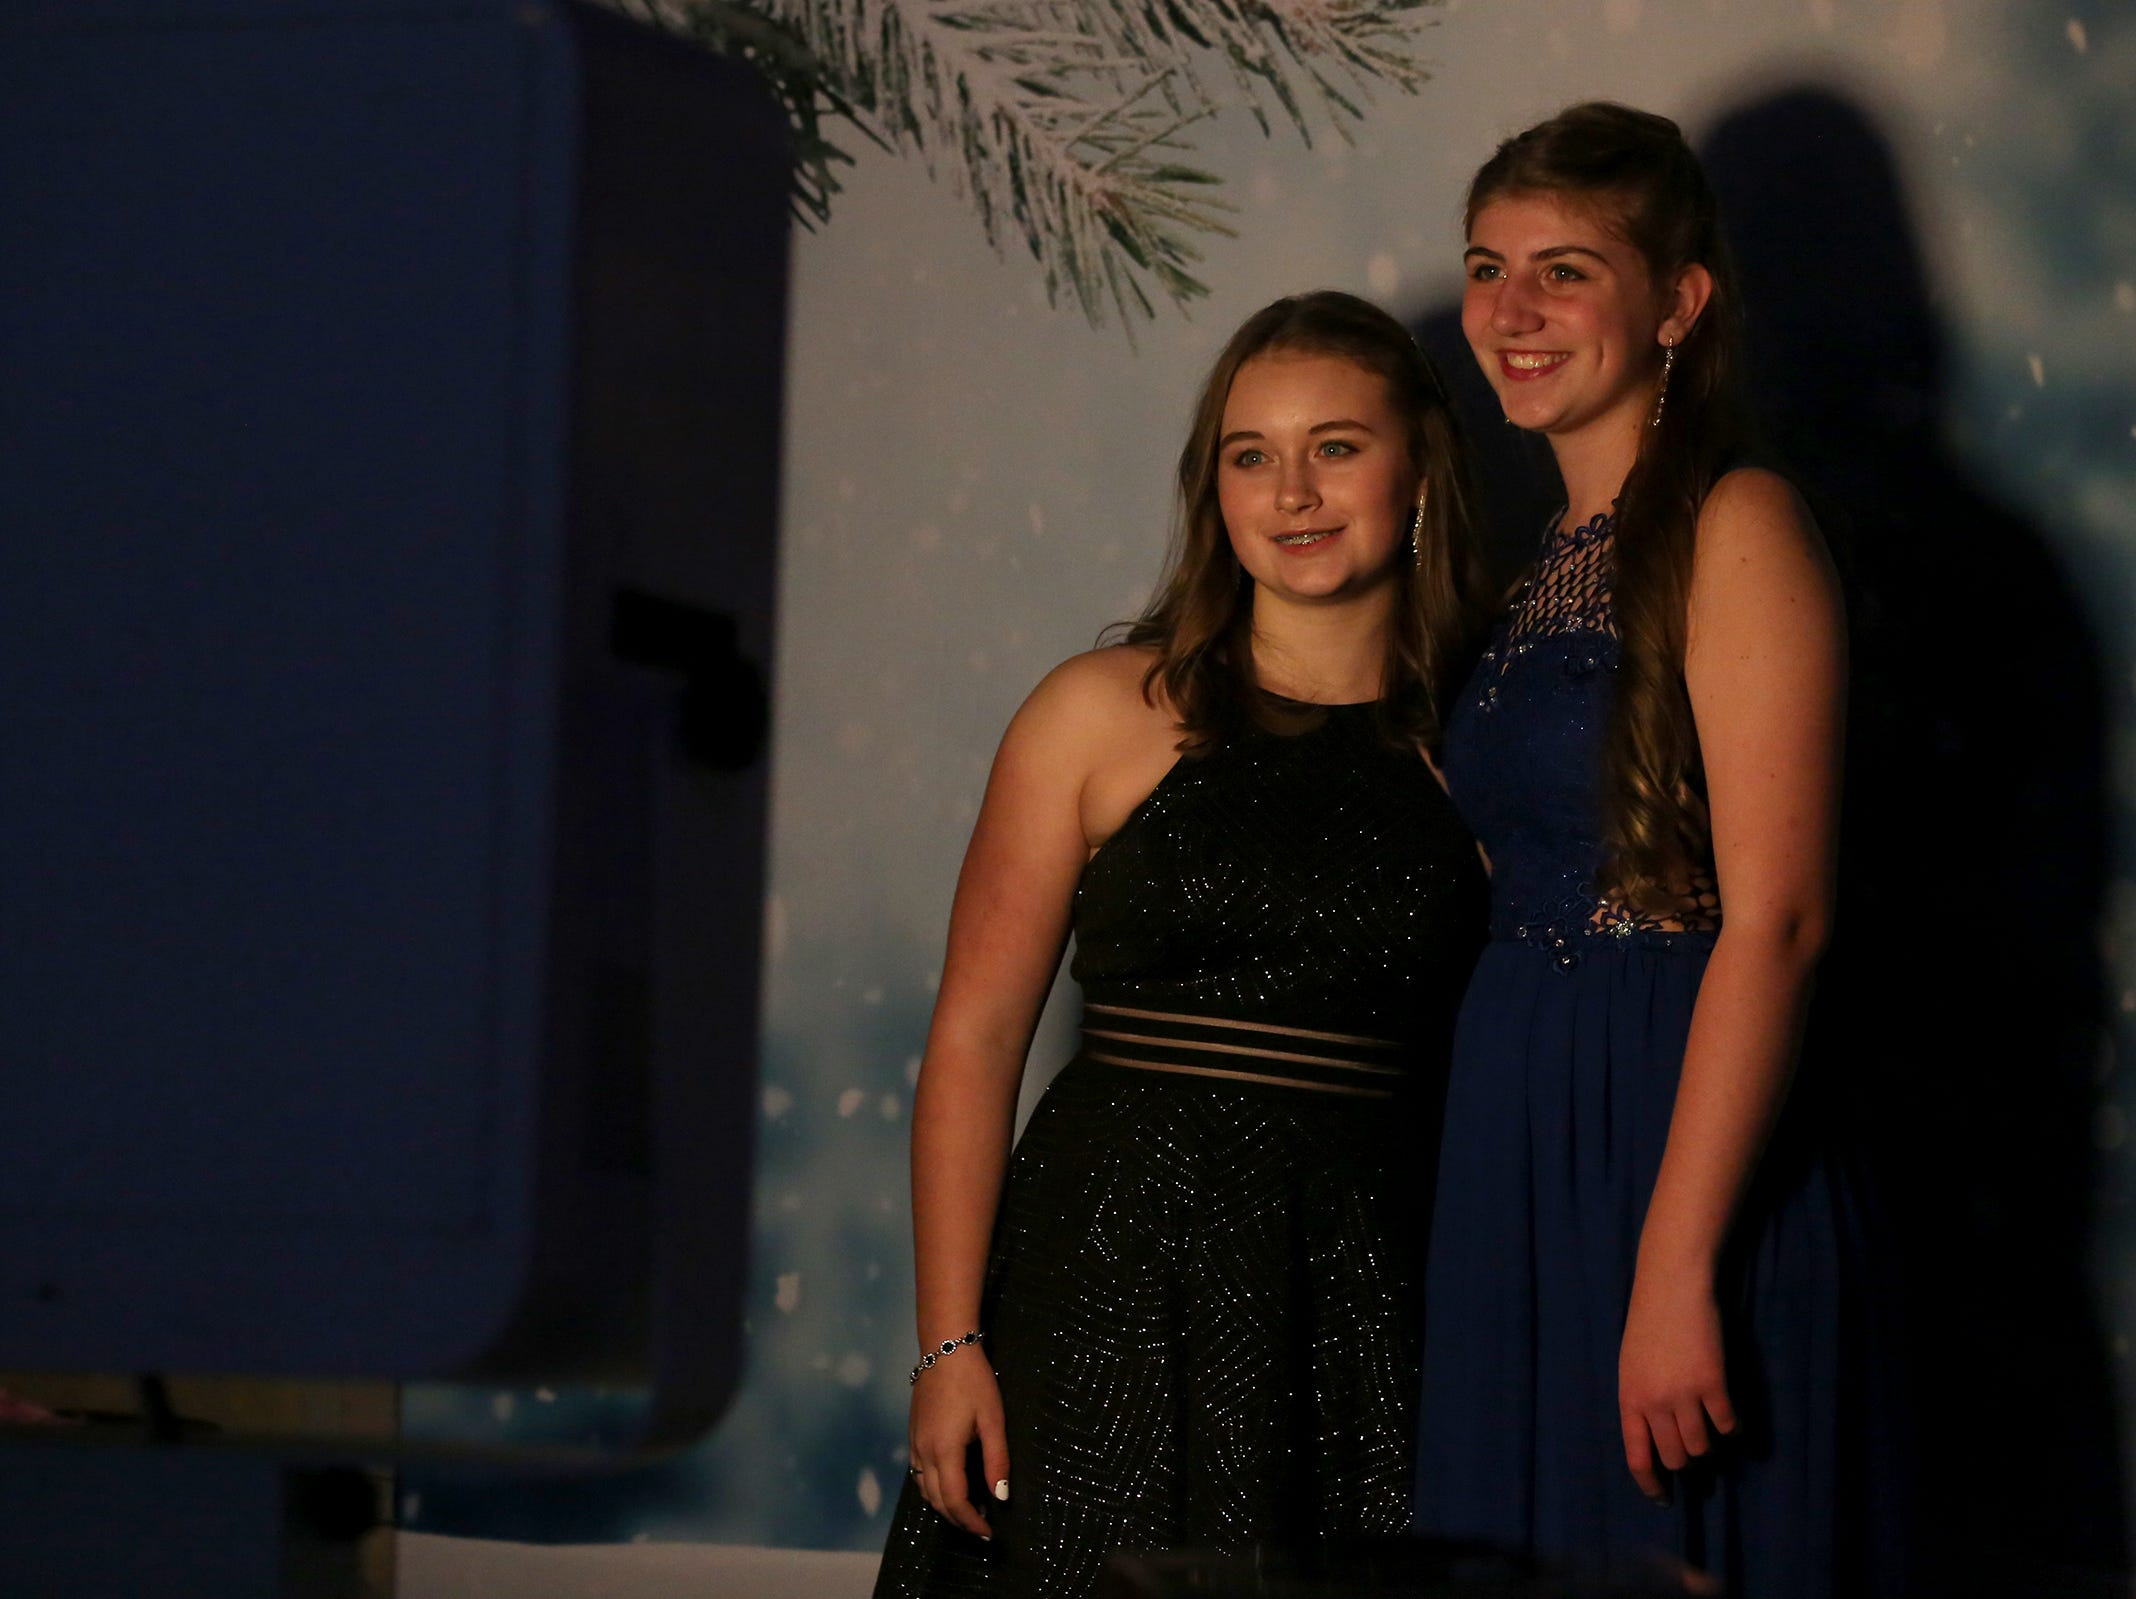 West Salem sophomore Leilah Hoit and Tigard sophomore Paige Daum pose for the photo booth at the annual SnoBall at the Oregon State Fairgrounds Pavilion in Salem on Saturday, Dec. 1, 2018. The two sisters were excited to attend the dance for their first time.